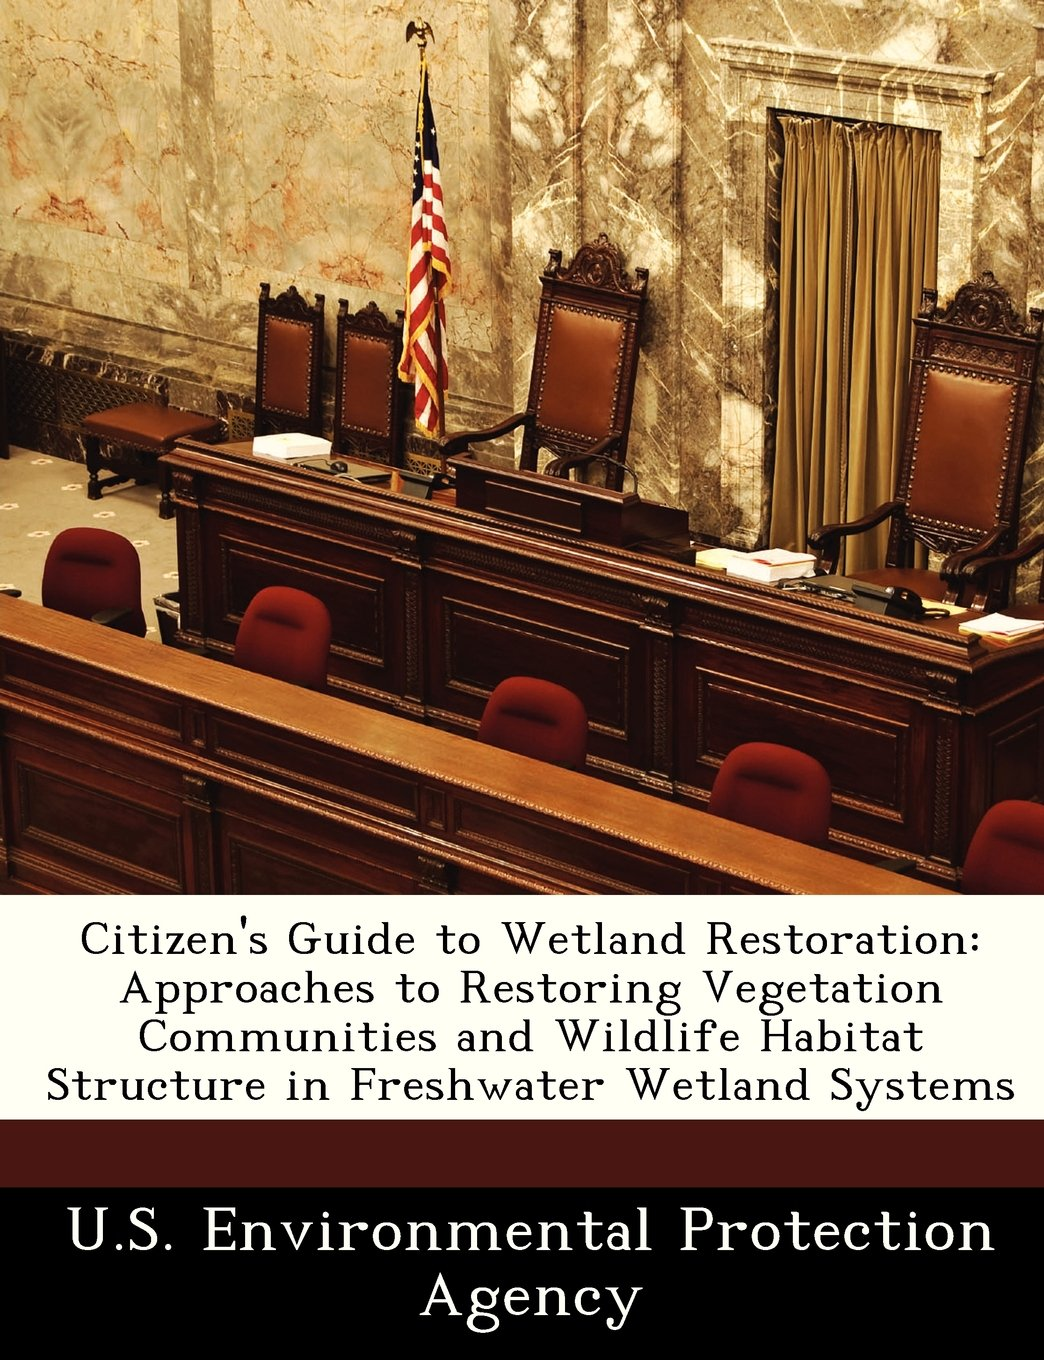 Citizen's Guide to Wetland Restoration: Approaches to Restoring Vegetation Communities and Wildlife Habitat Structure in Freshwater Wetland Systems pdf